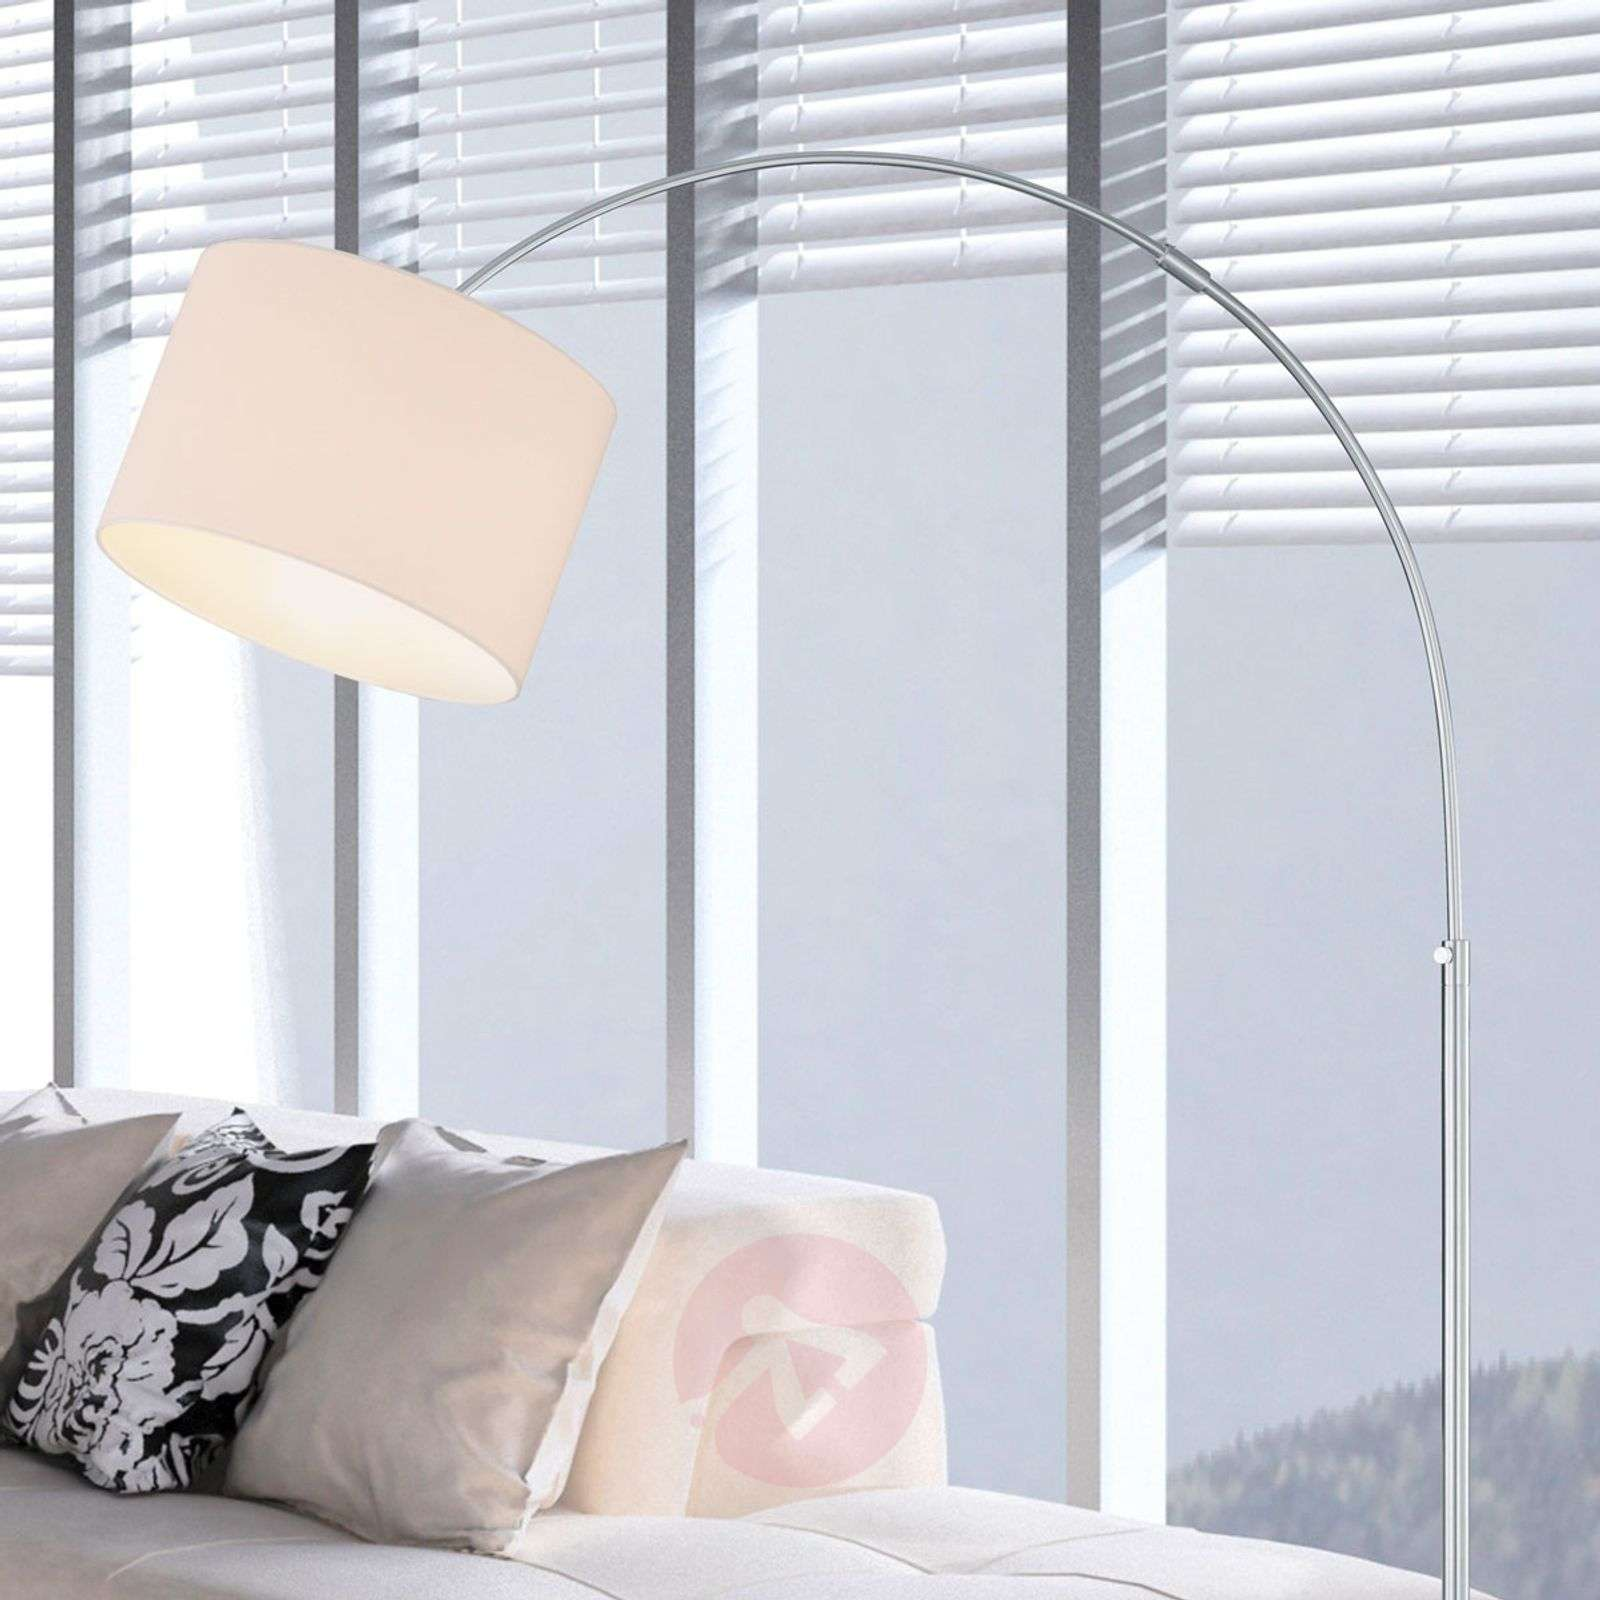 Curved Floor Lamp Risa With Fabric Lampshade 9004556 01 ...